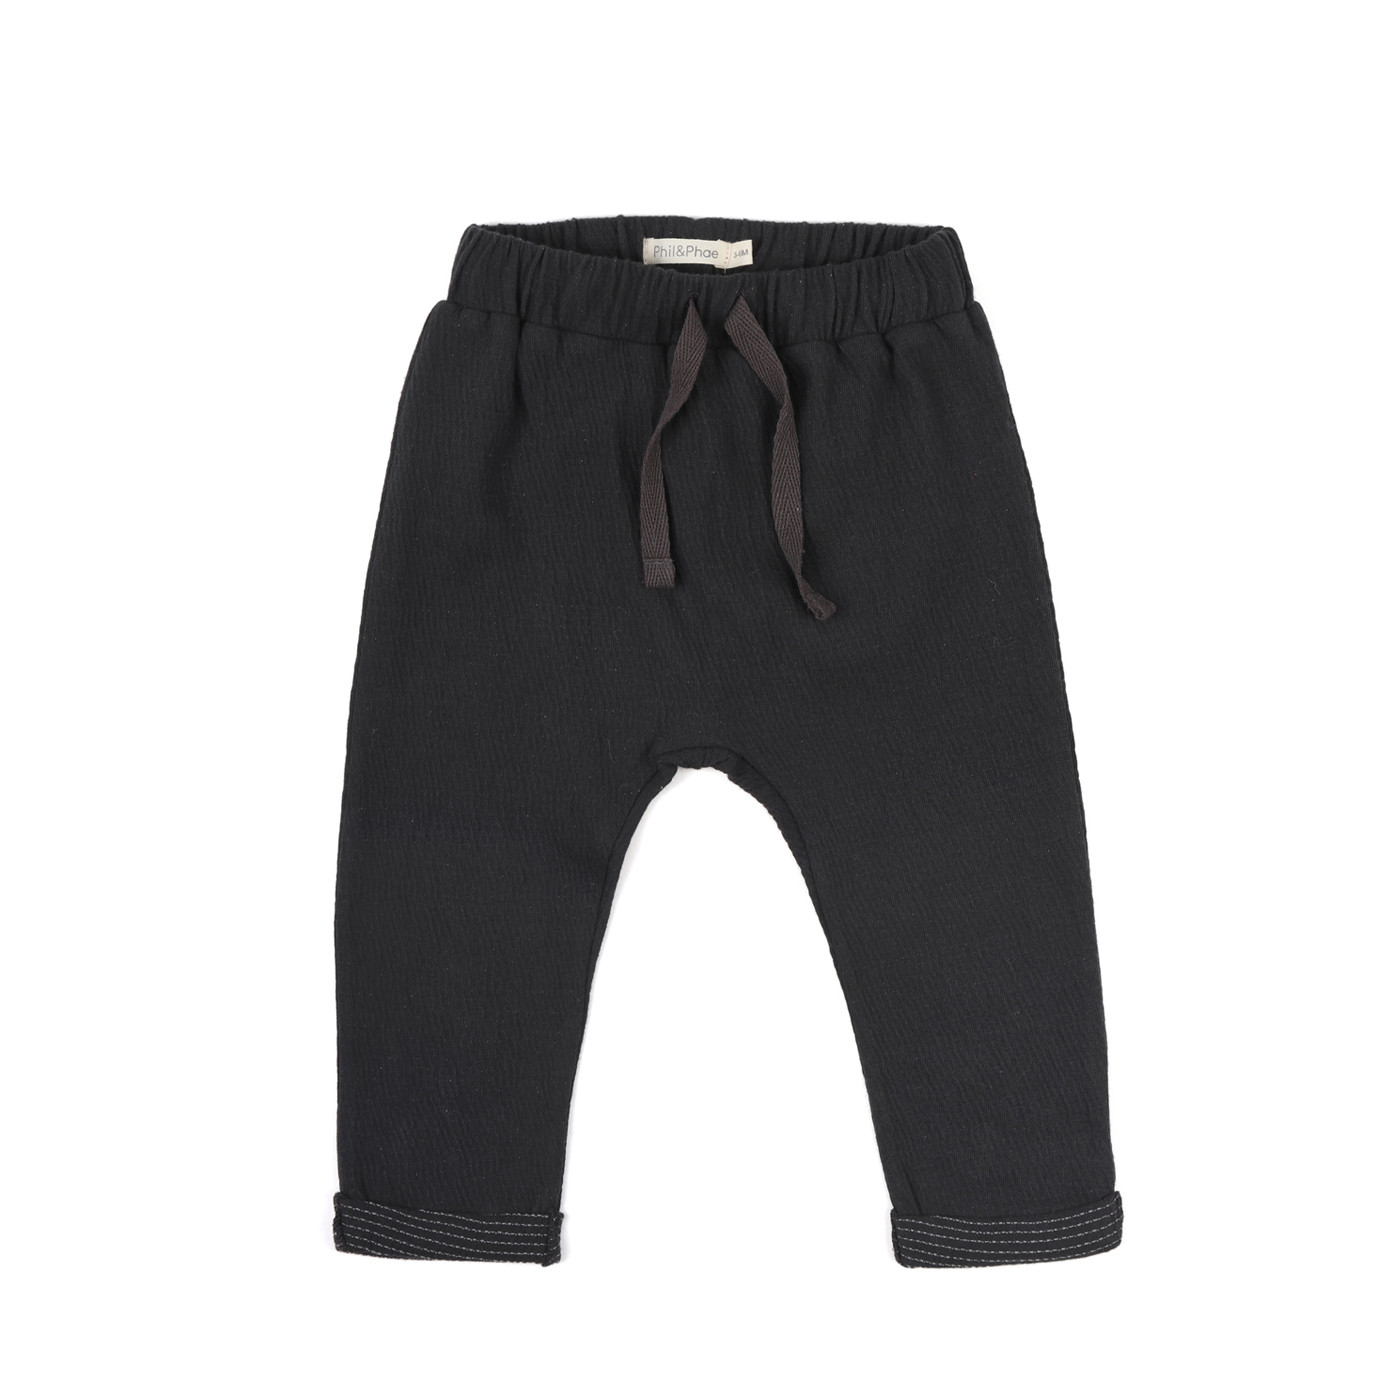 textured-baby-pants-charcoal.jpg